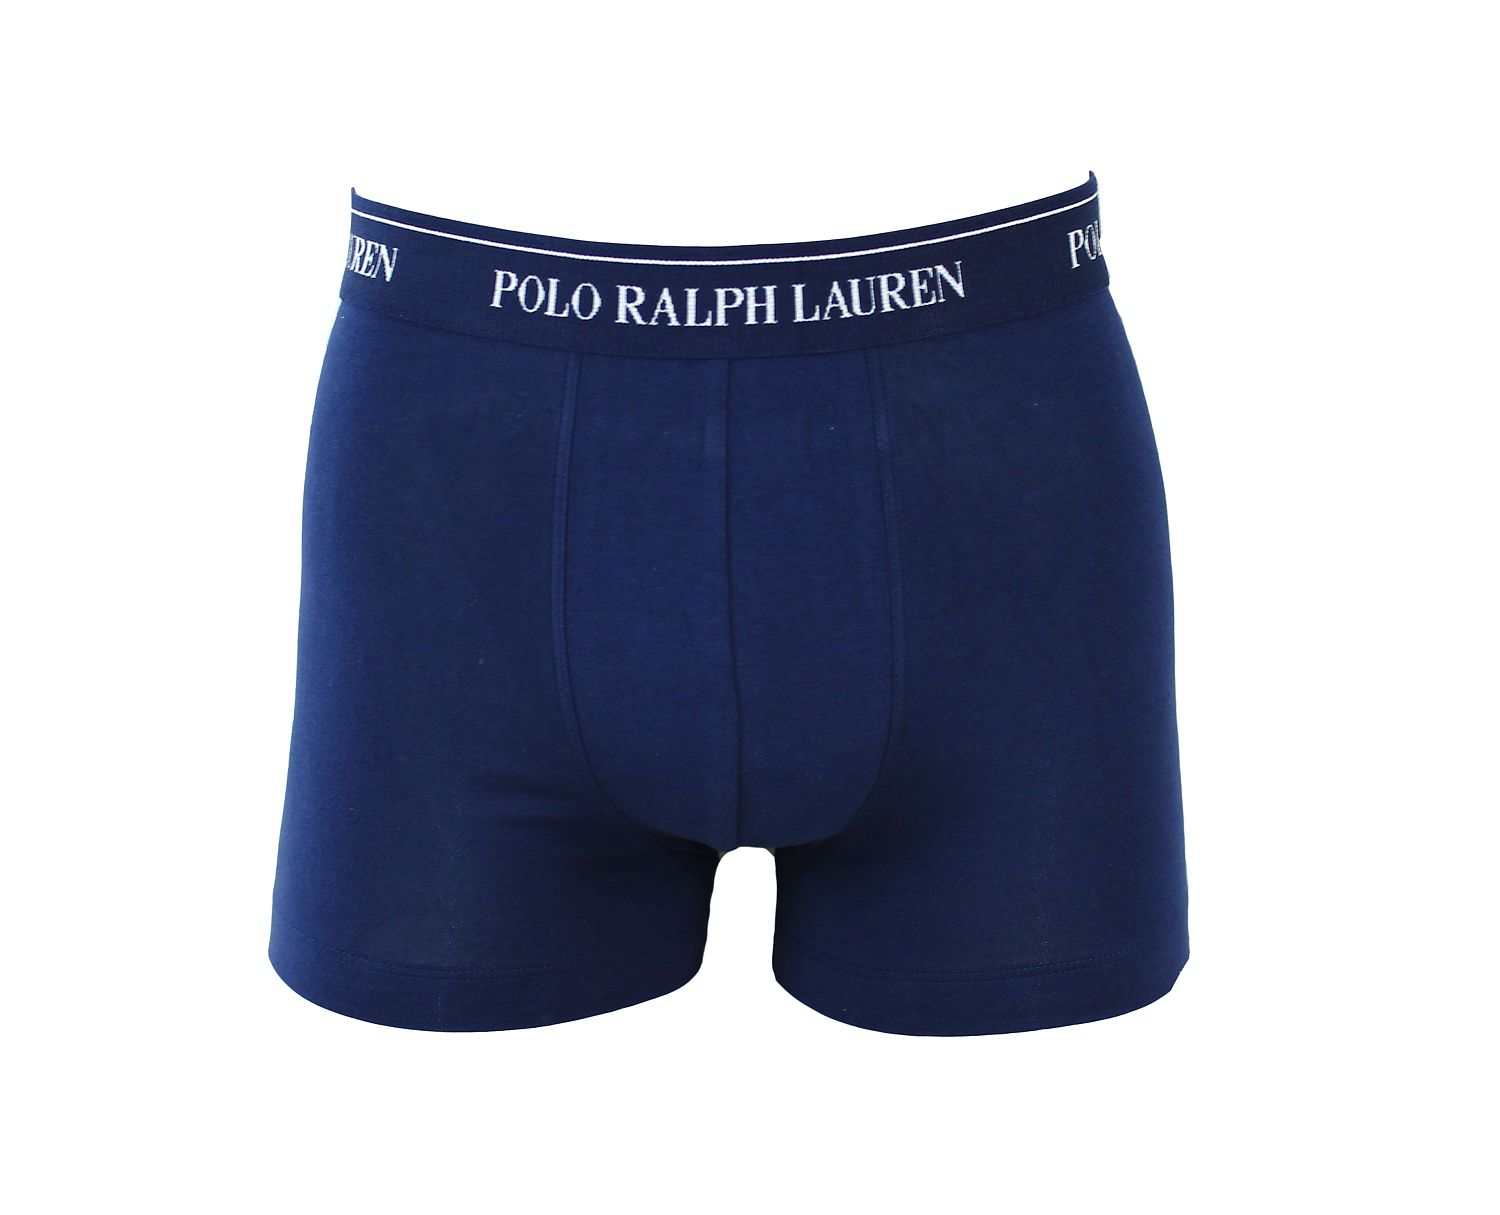 3 er Pack Ralph Lauren Shorts Unterhosen Trunks blue denim 251 U3TRKBSHC2A HW16